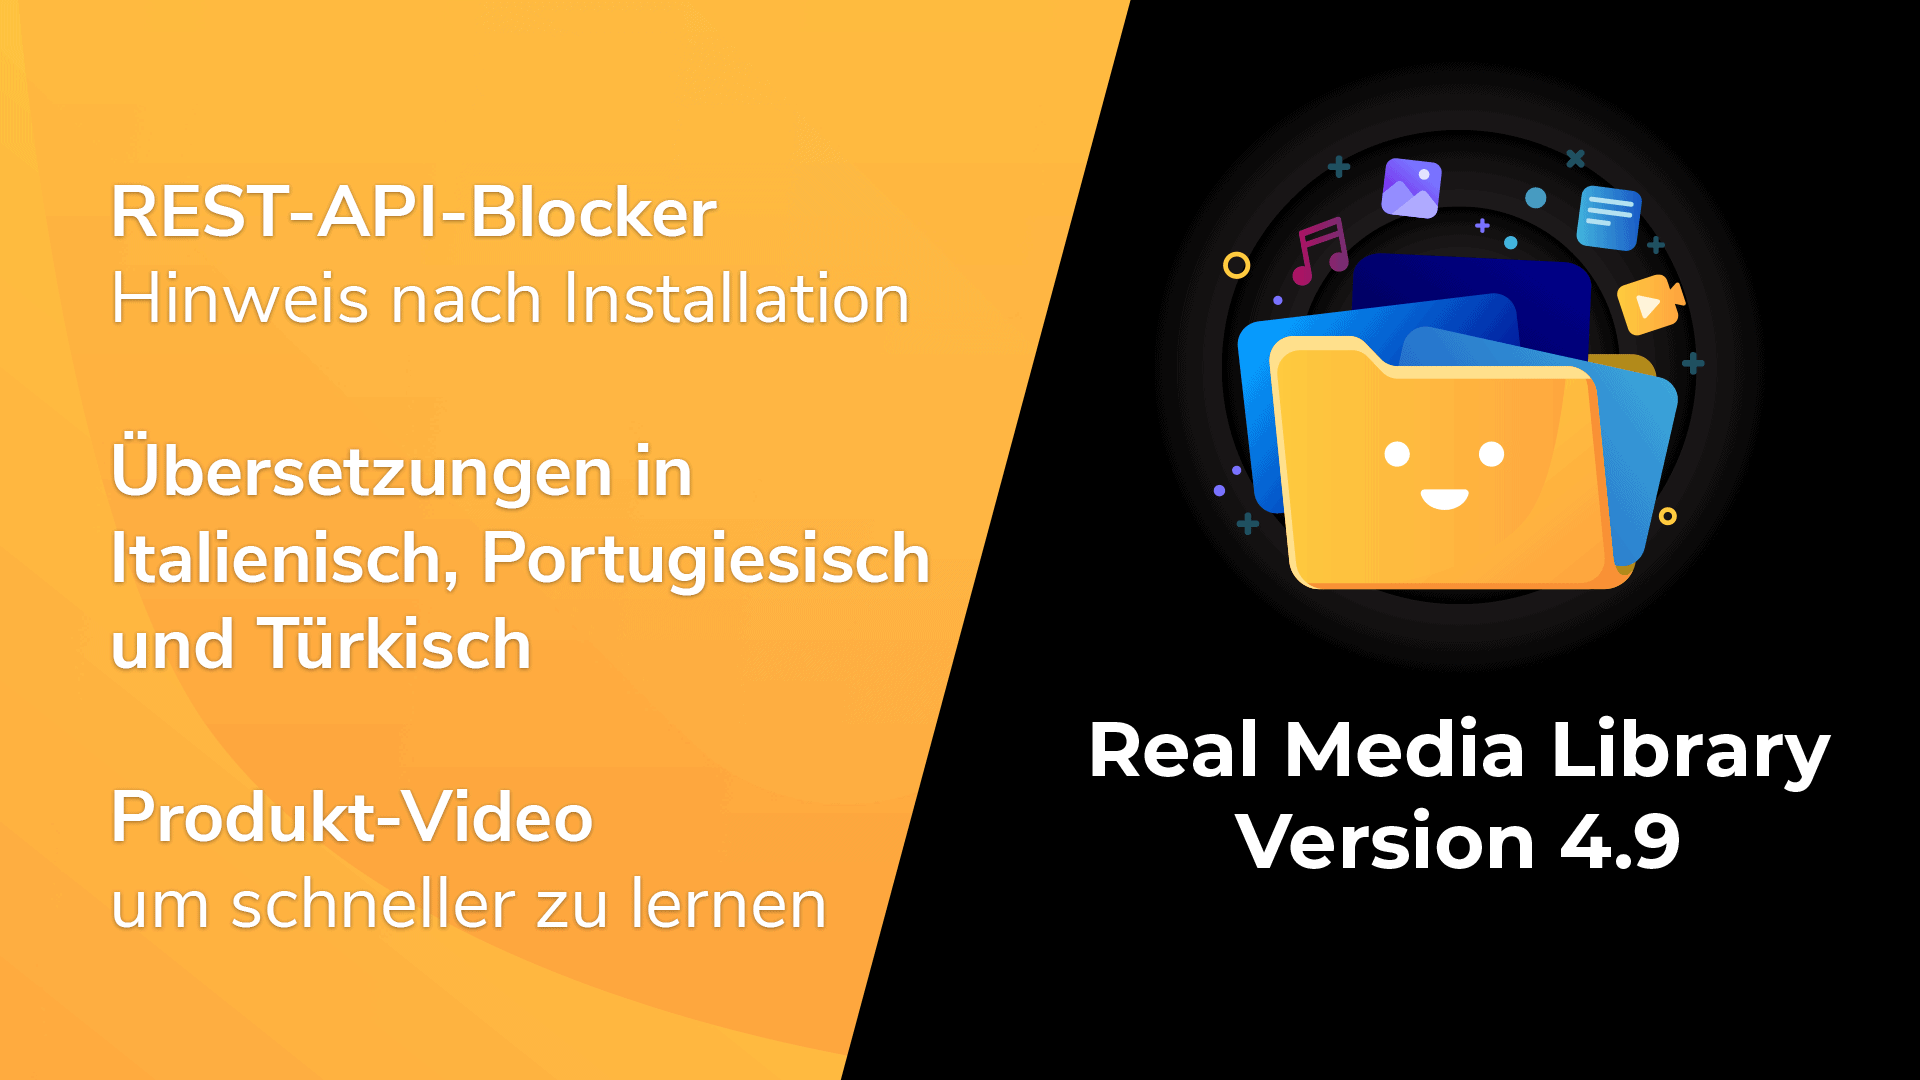 Real Media Library Version 4.9